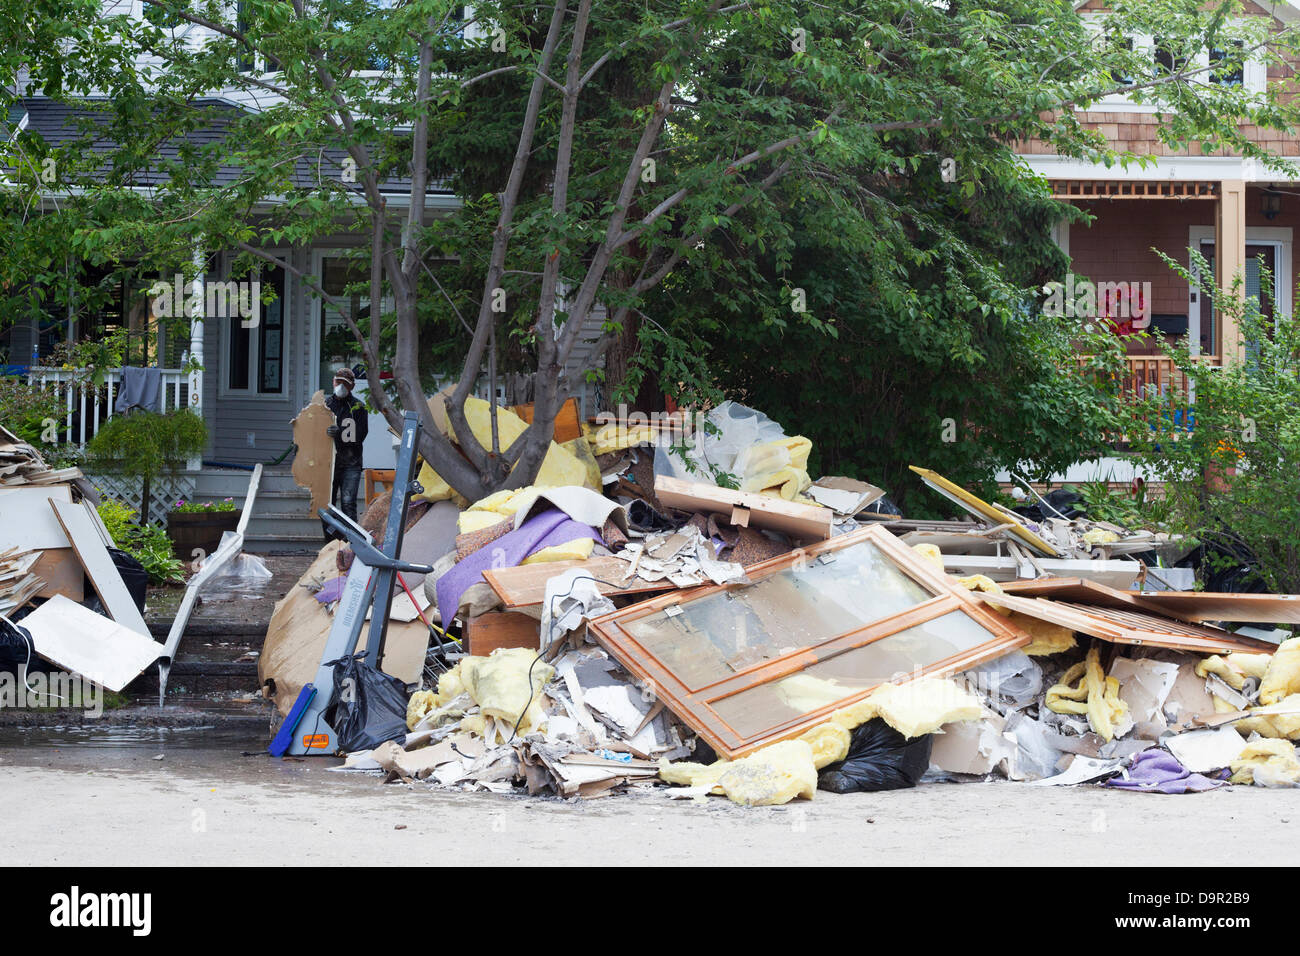 Man removes items from a house as cleanup begins after floodwaters recede from the Sunnyside neighbourhood of Calgary, - Stock Image